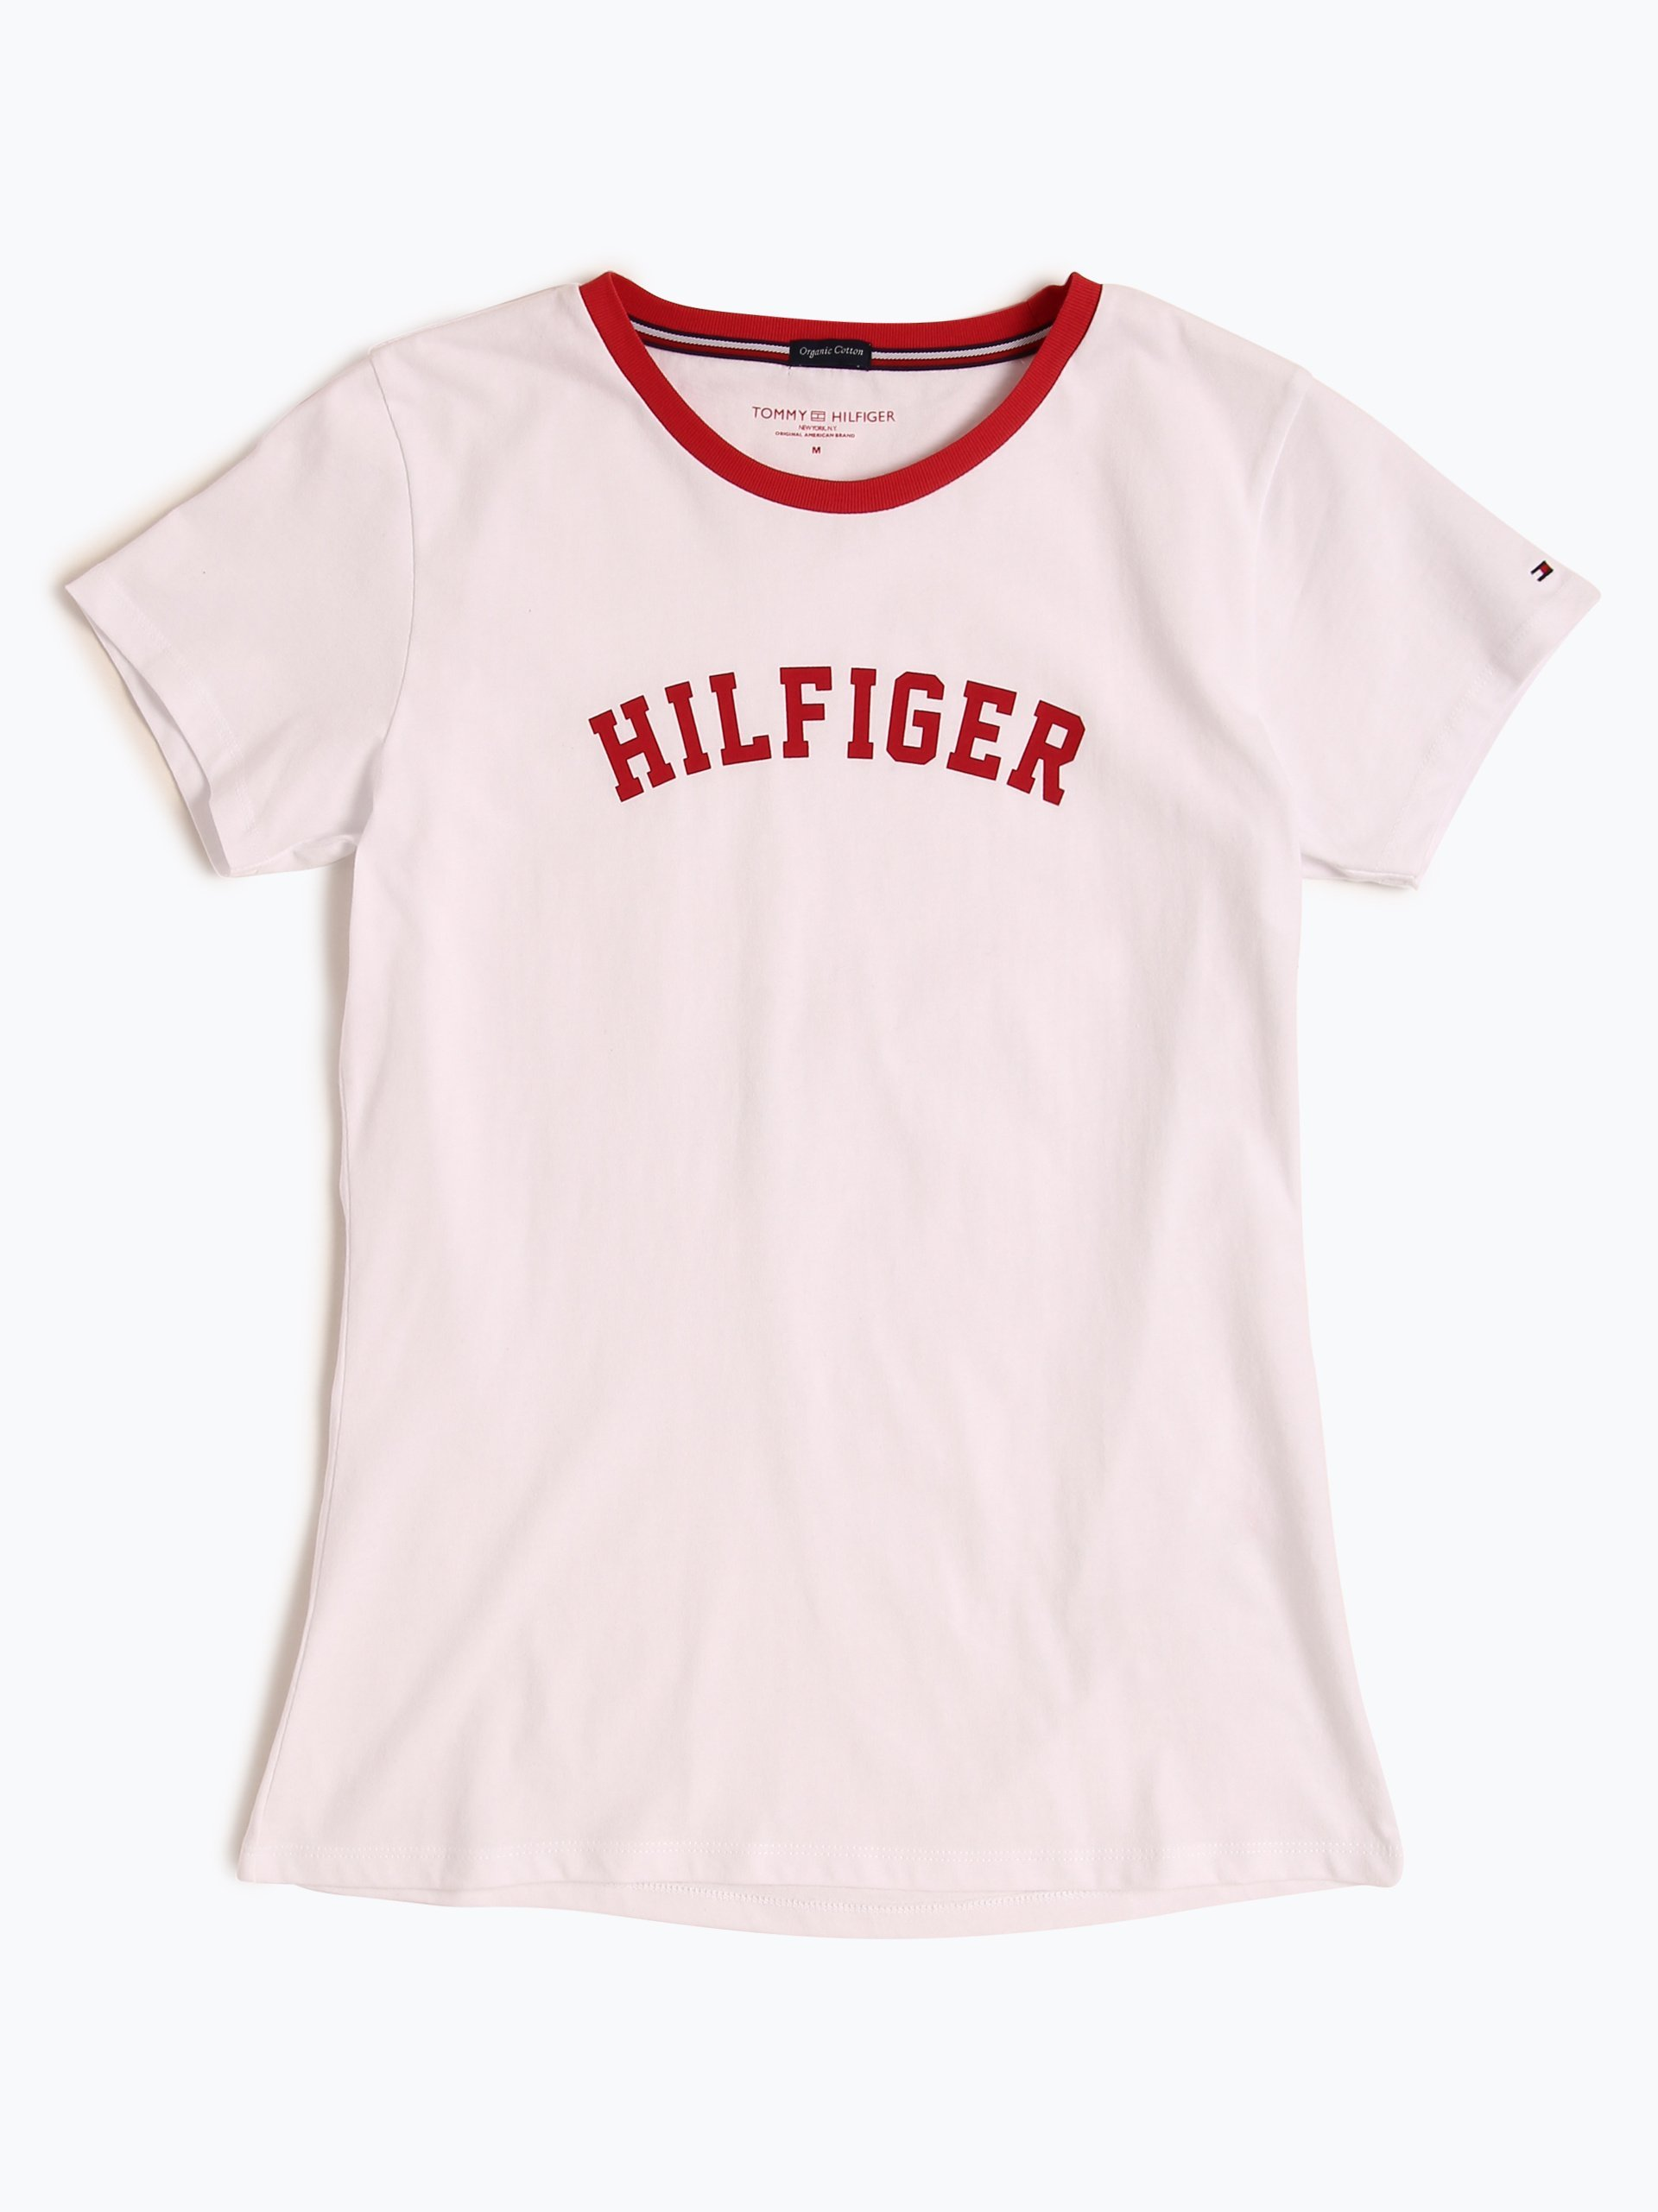 tommy hilfiger damen pyjama shirt wei uni online kaufen. Black Bedroom Furniture Sets. Home Design Ideas